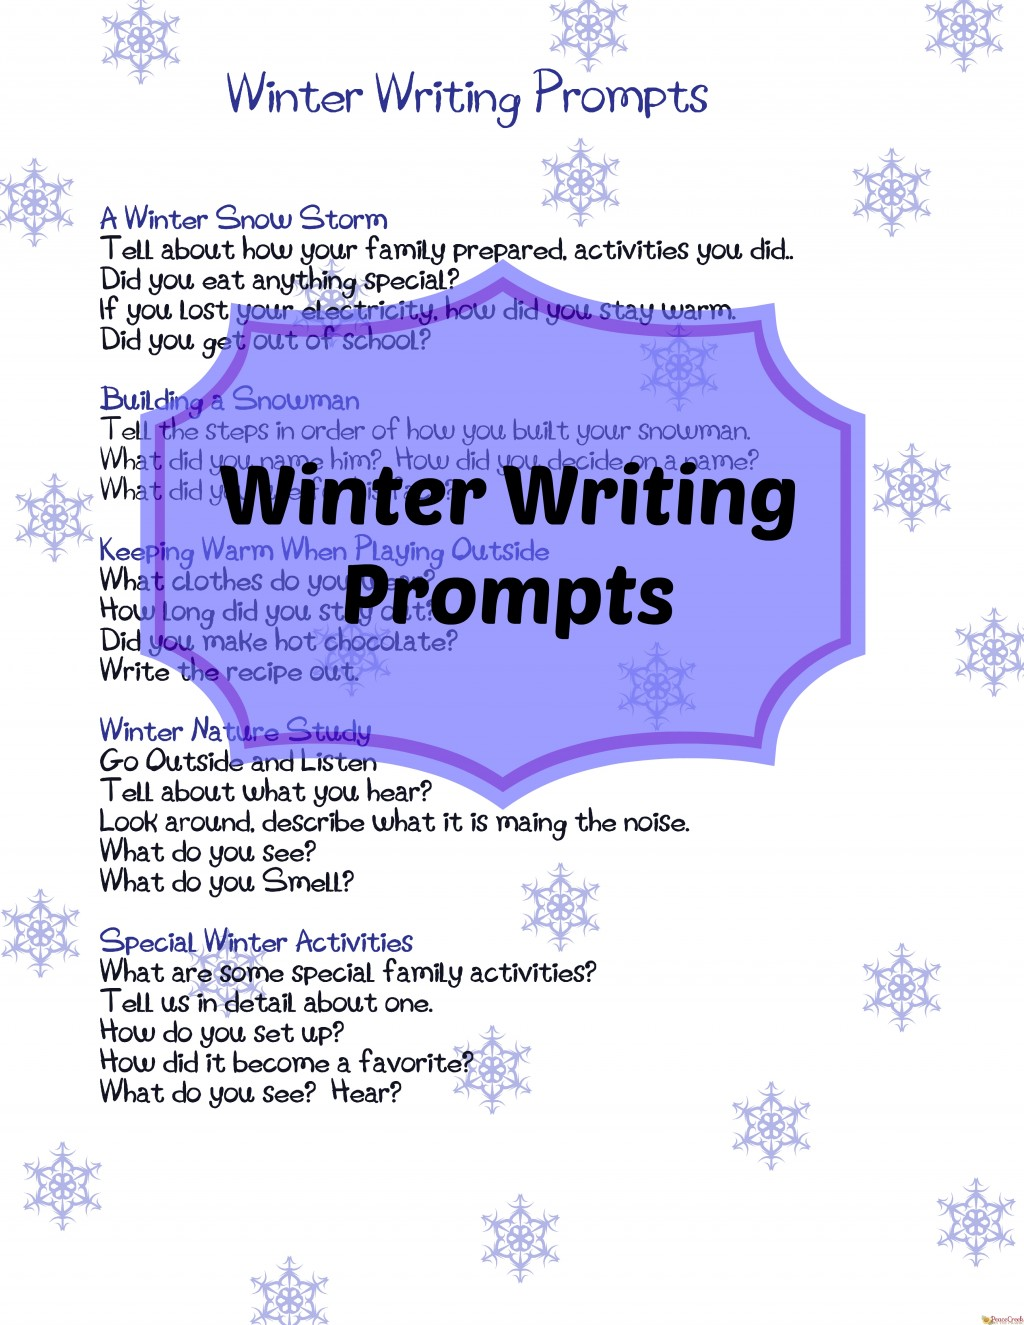 006 Essay Example Coalition Prompts Free Winter Writing Printable Peacecreekontheprairie Com College Sta Stanford Uc Harvard Examples List For Csu Texas Stunning Prompt 1 2018-19 Large